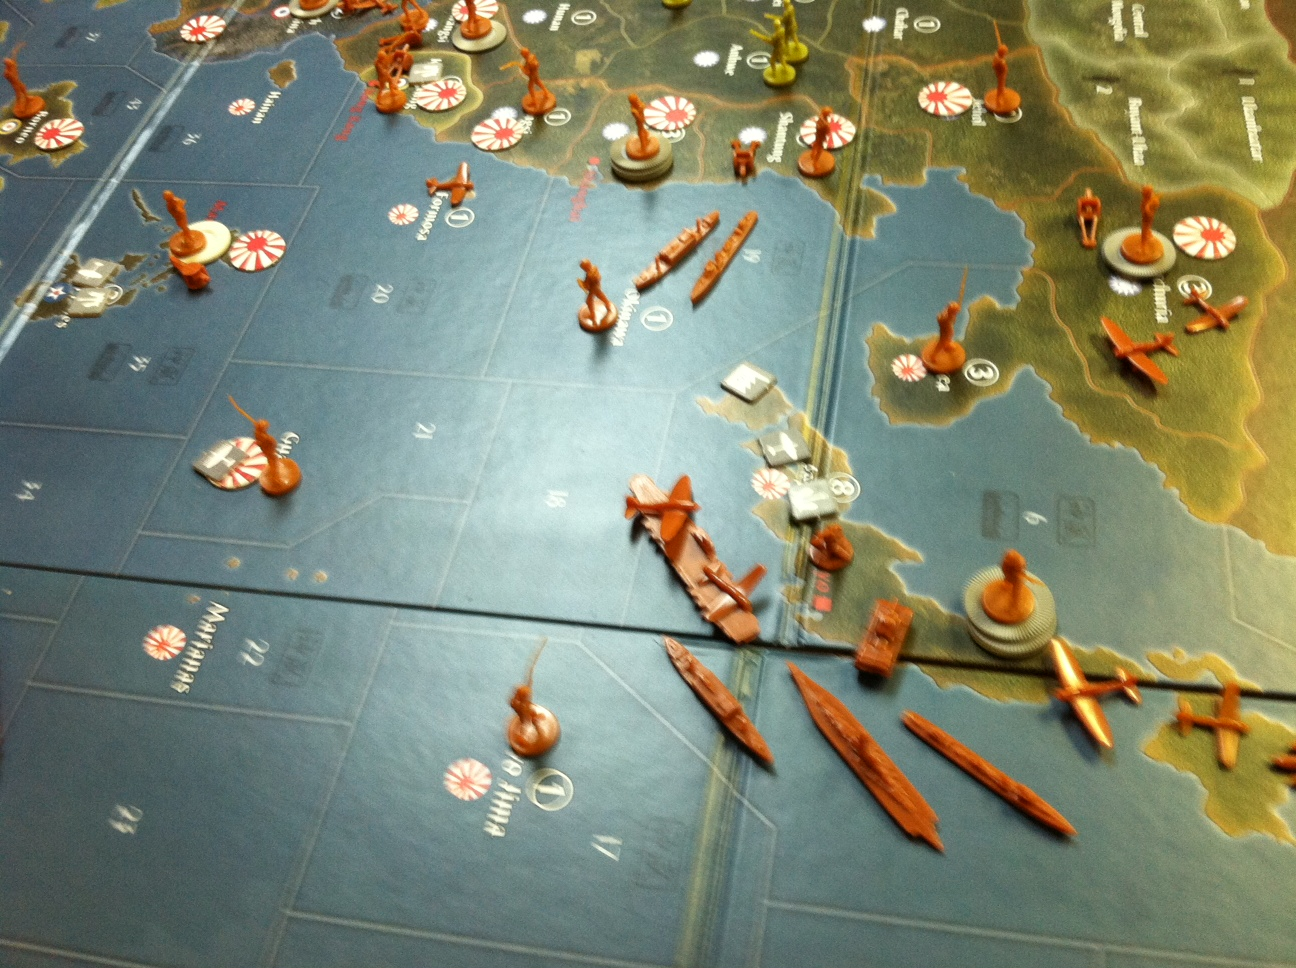 how to play axis and allies board game 1942